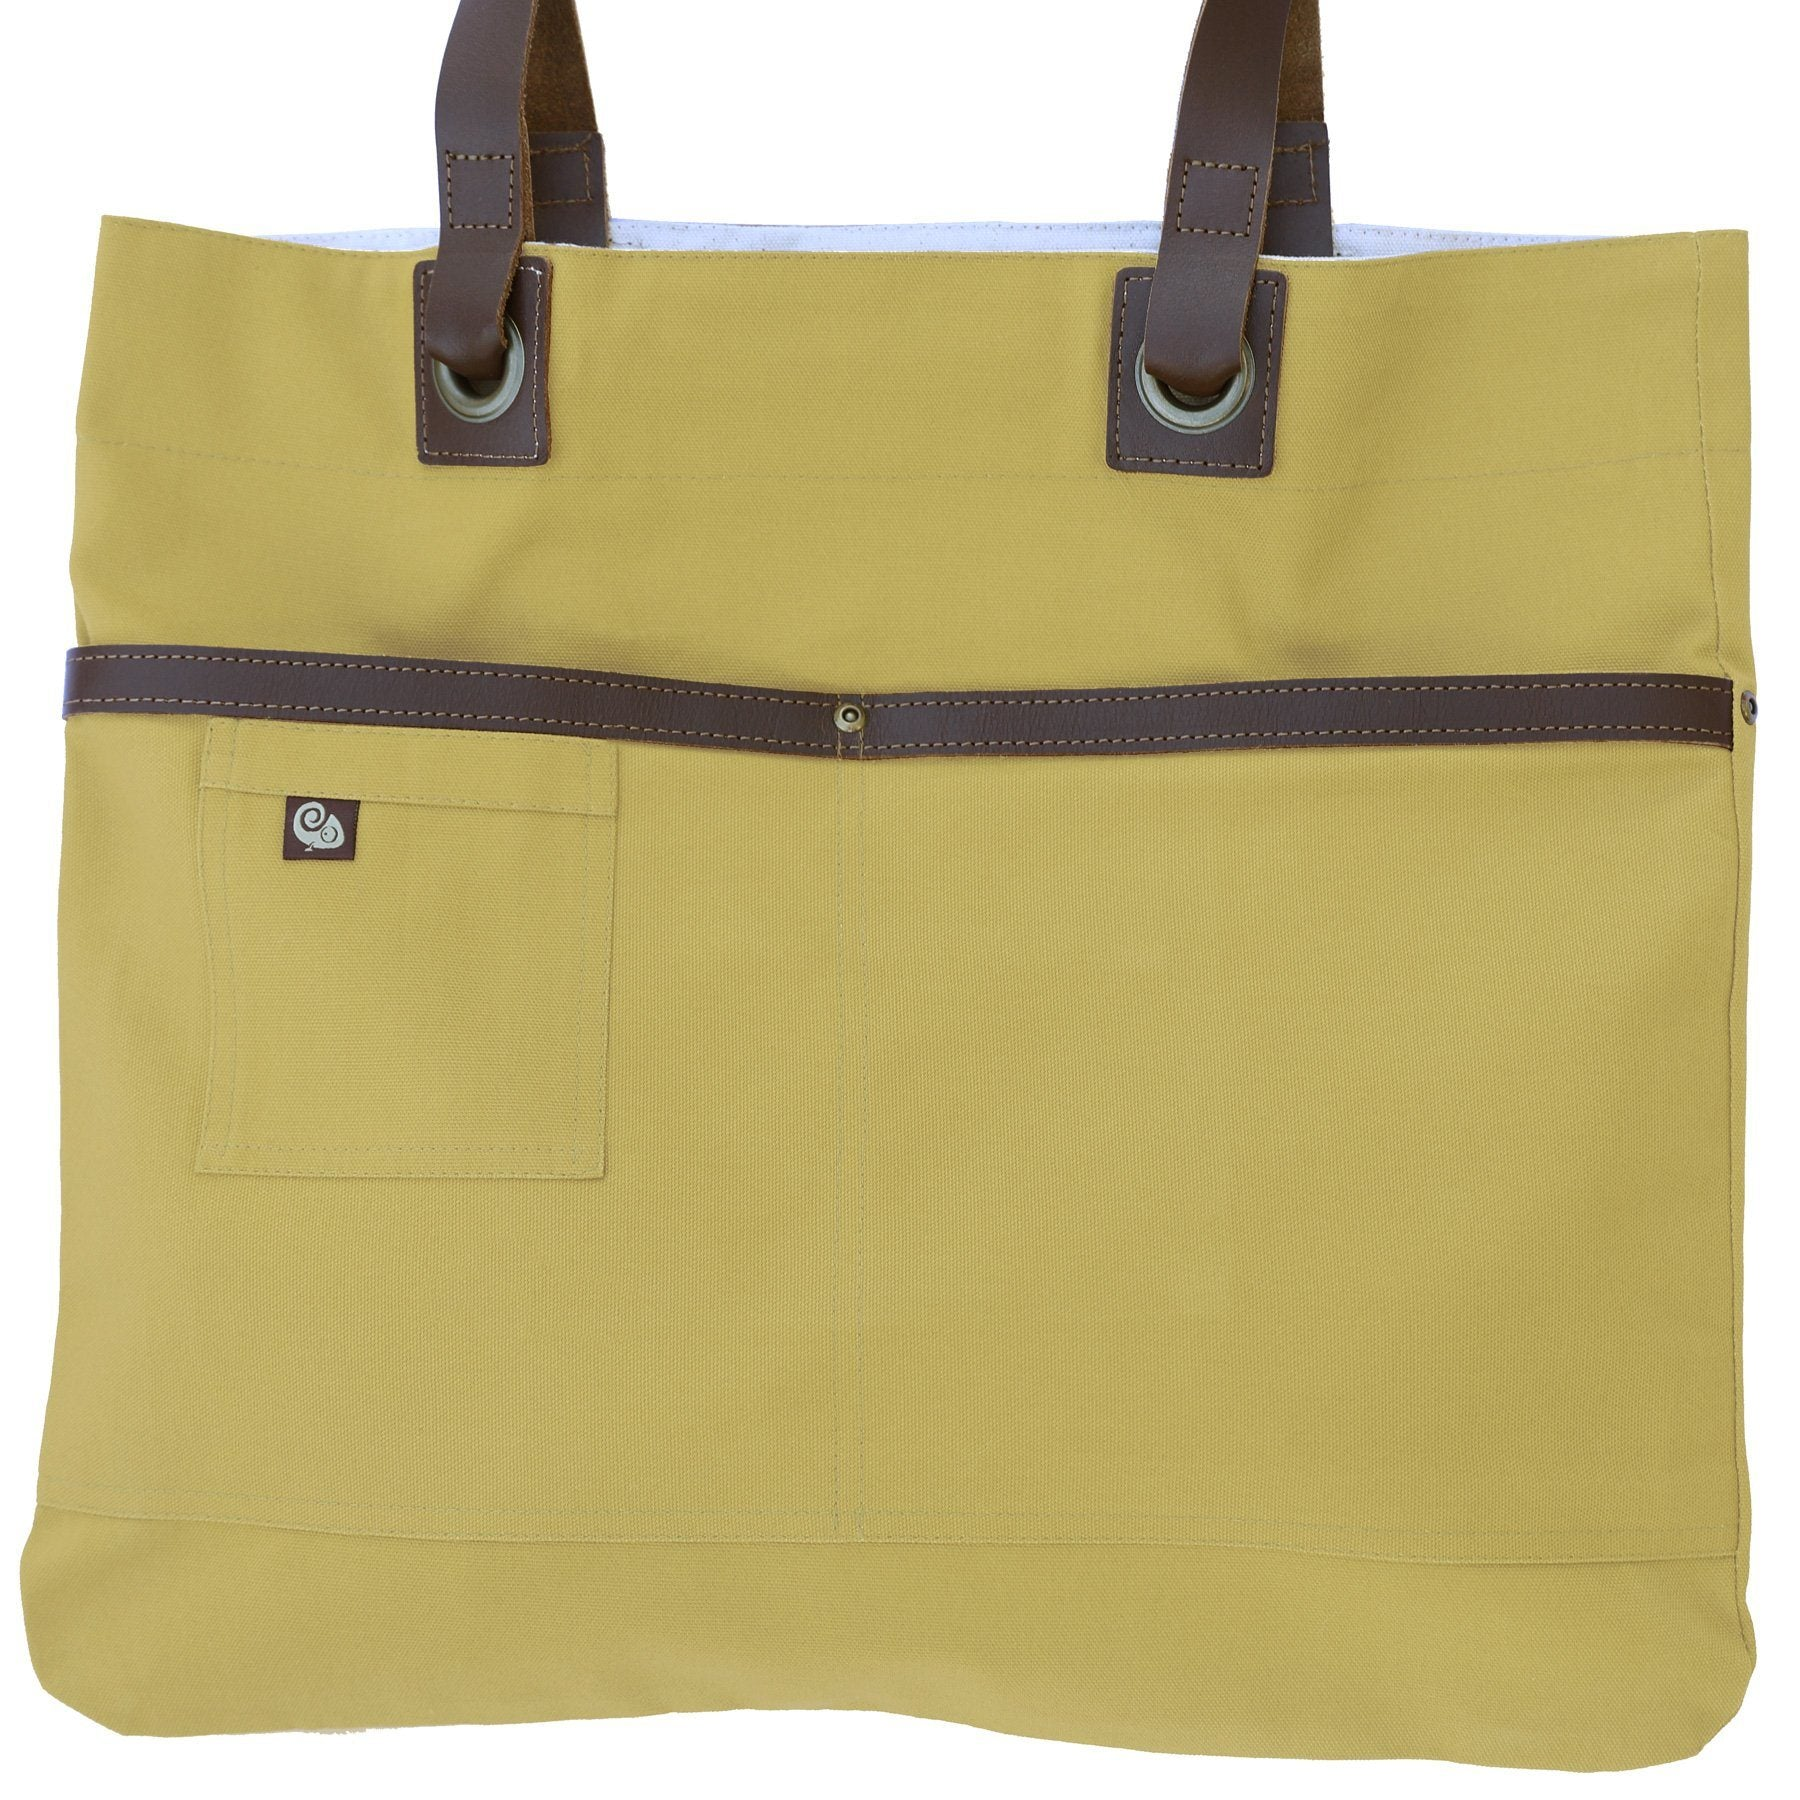 Koda Austell Canvas Bag (Honey)